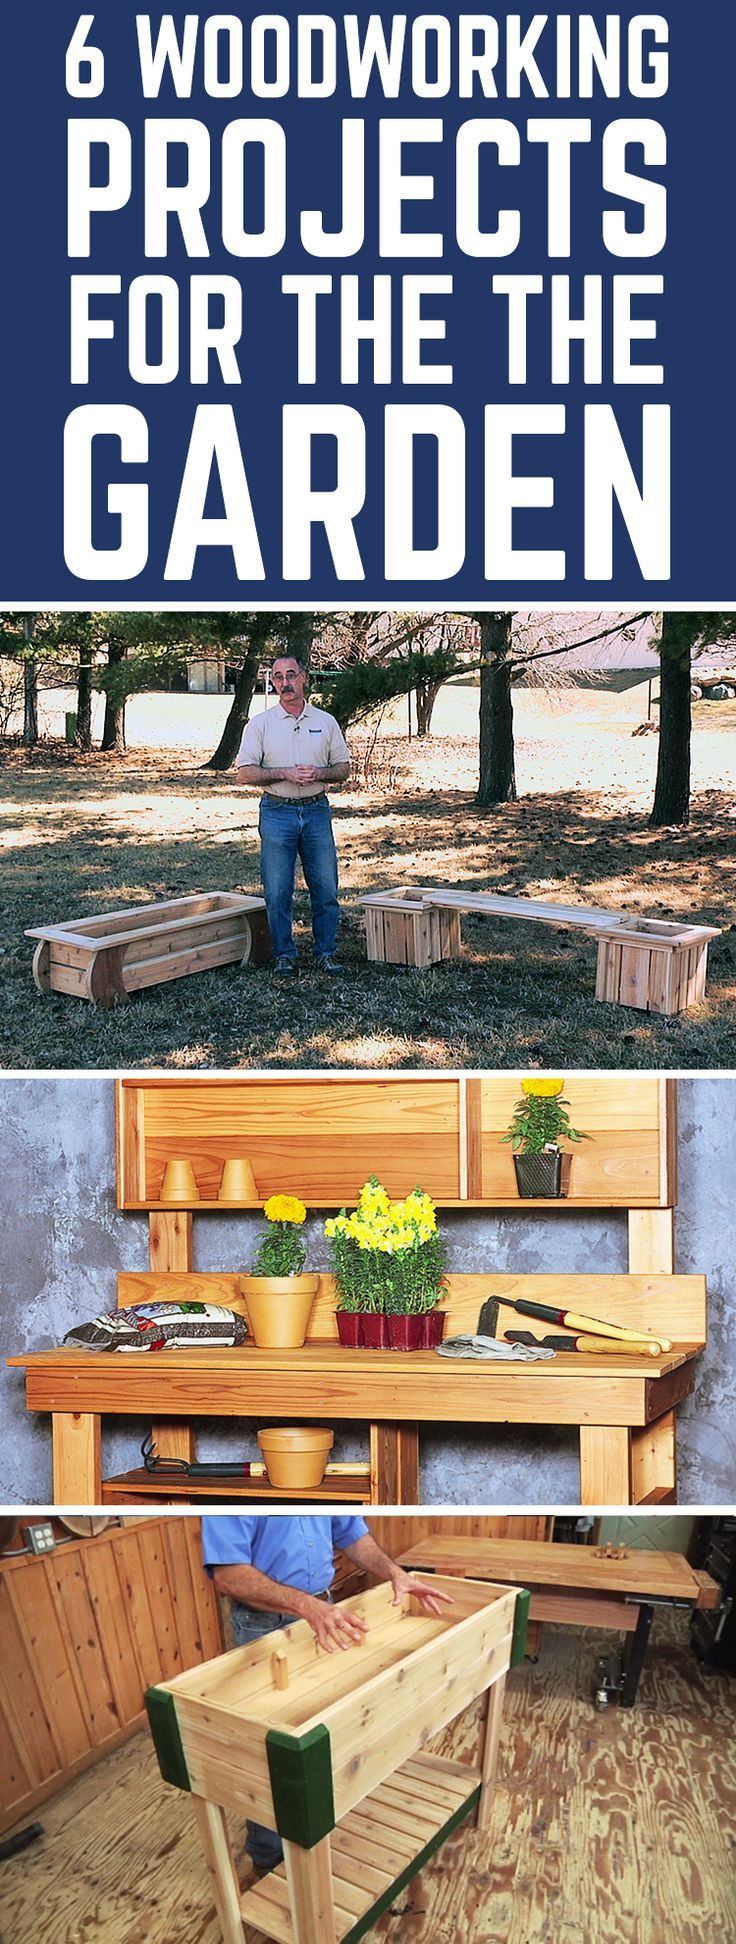 6 Woodworking Projects for the Garden 583